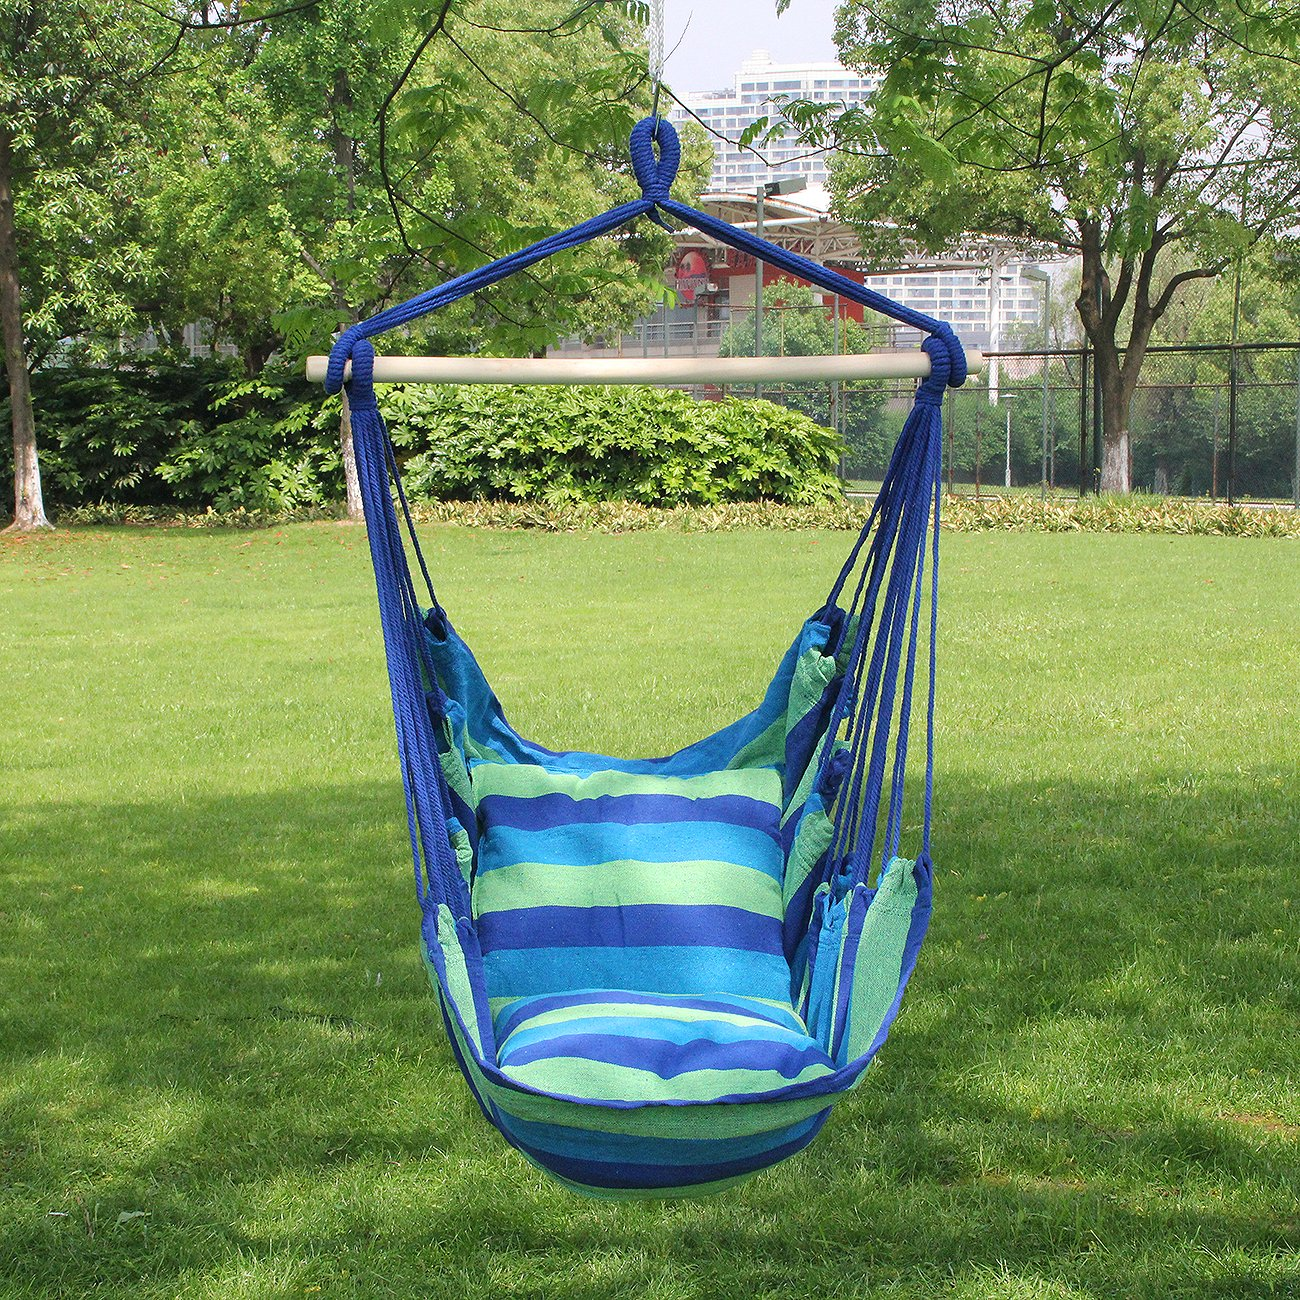 Sorbus Hanging Rope Hammock Chair Swing Seat for Any ...